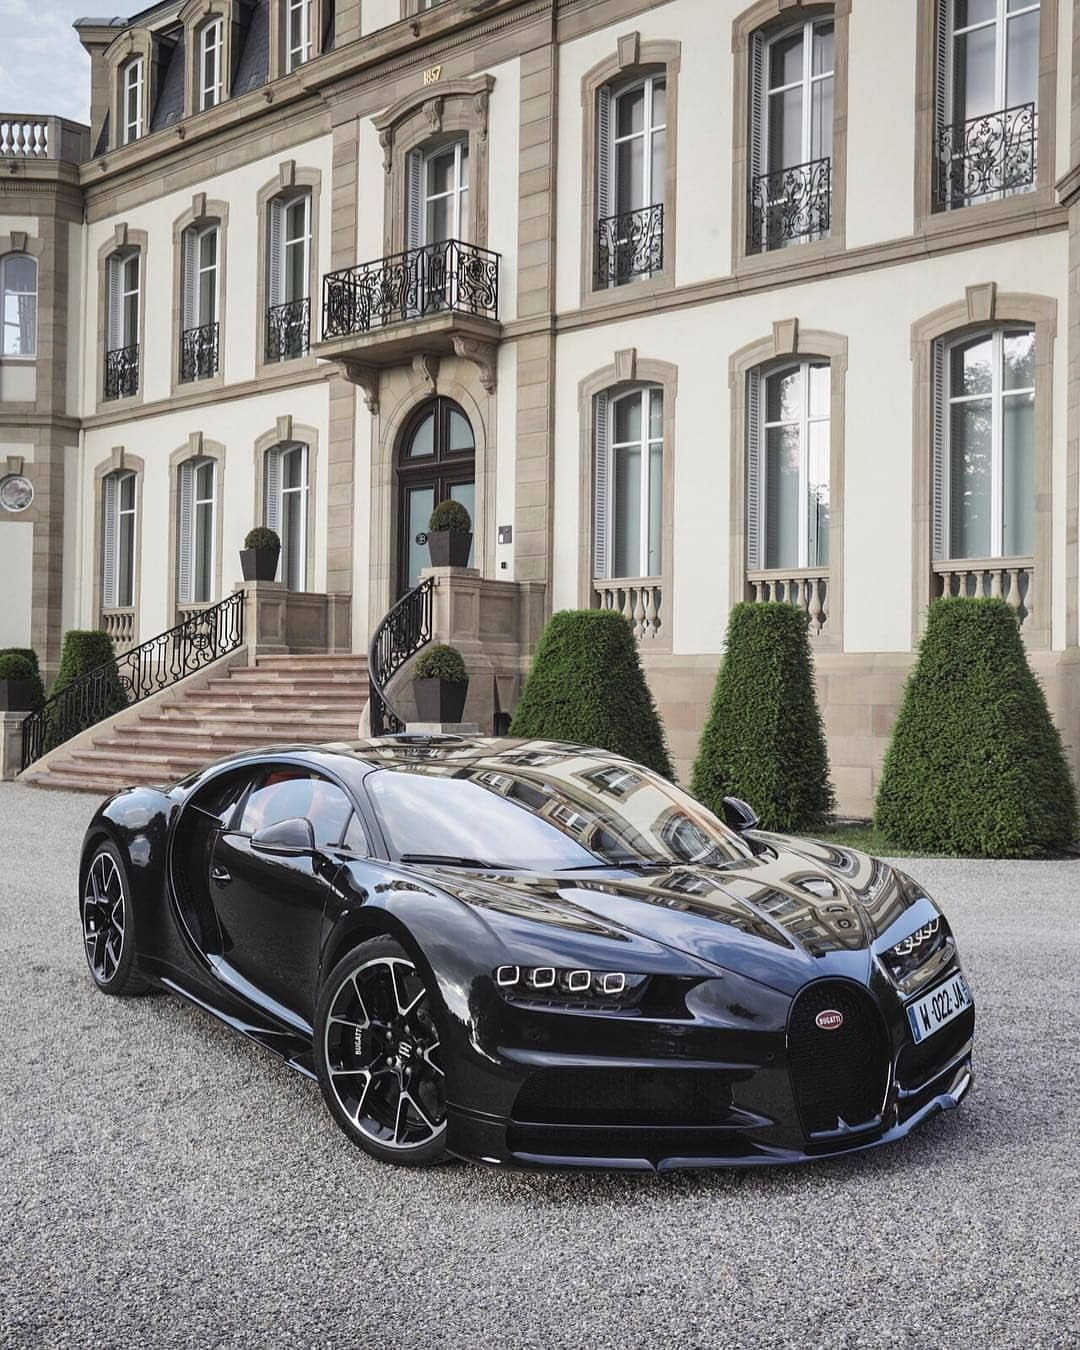 Supercar Cars Supercars Car Ferrari Porsche Lamborghini Luxury Carporn Carsofinstagram Hype Best Luxury Cars Bugatti Cars Lamborghini Cars